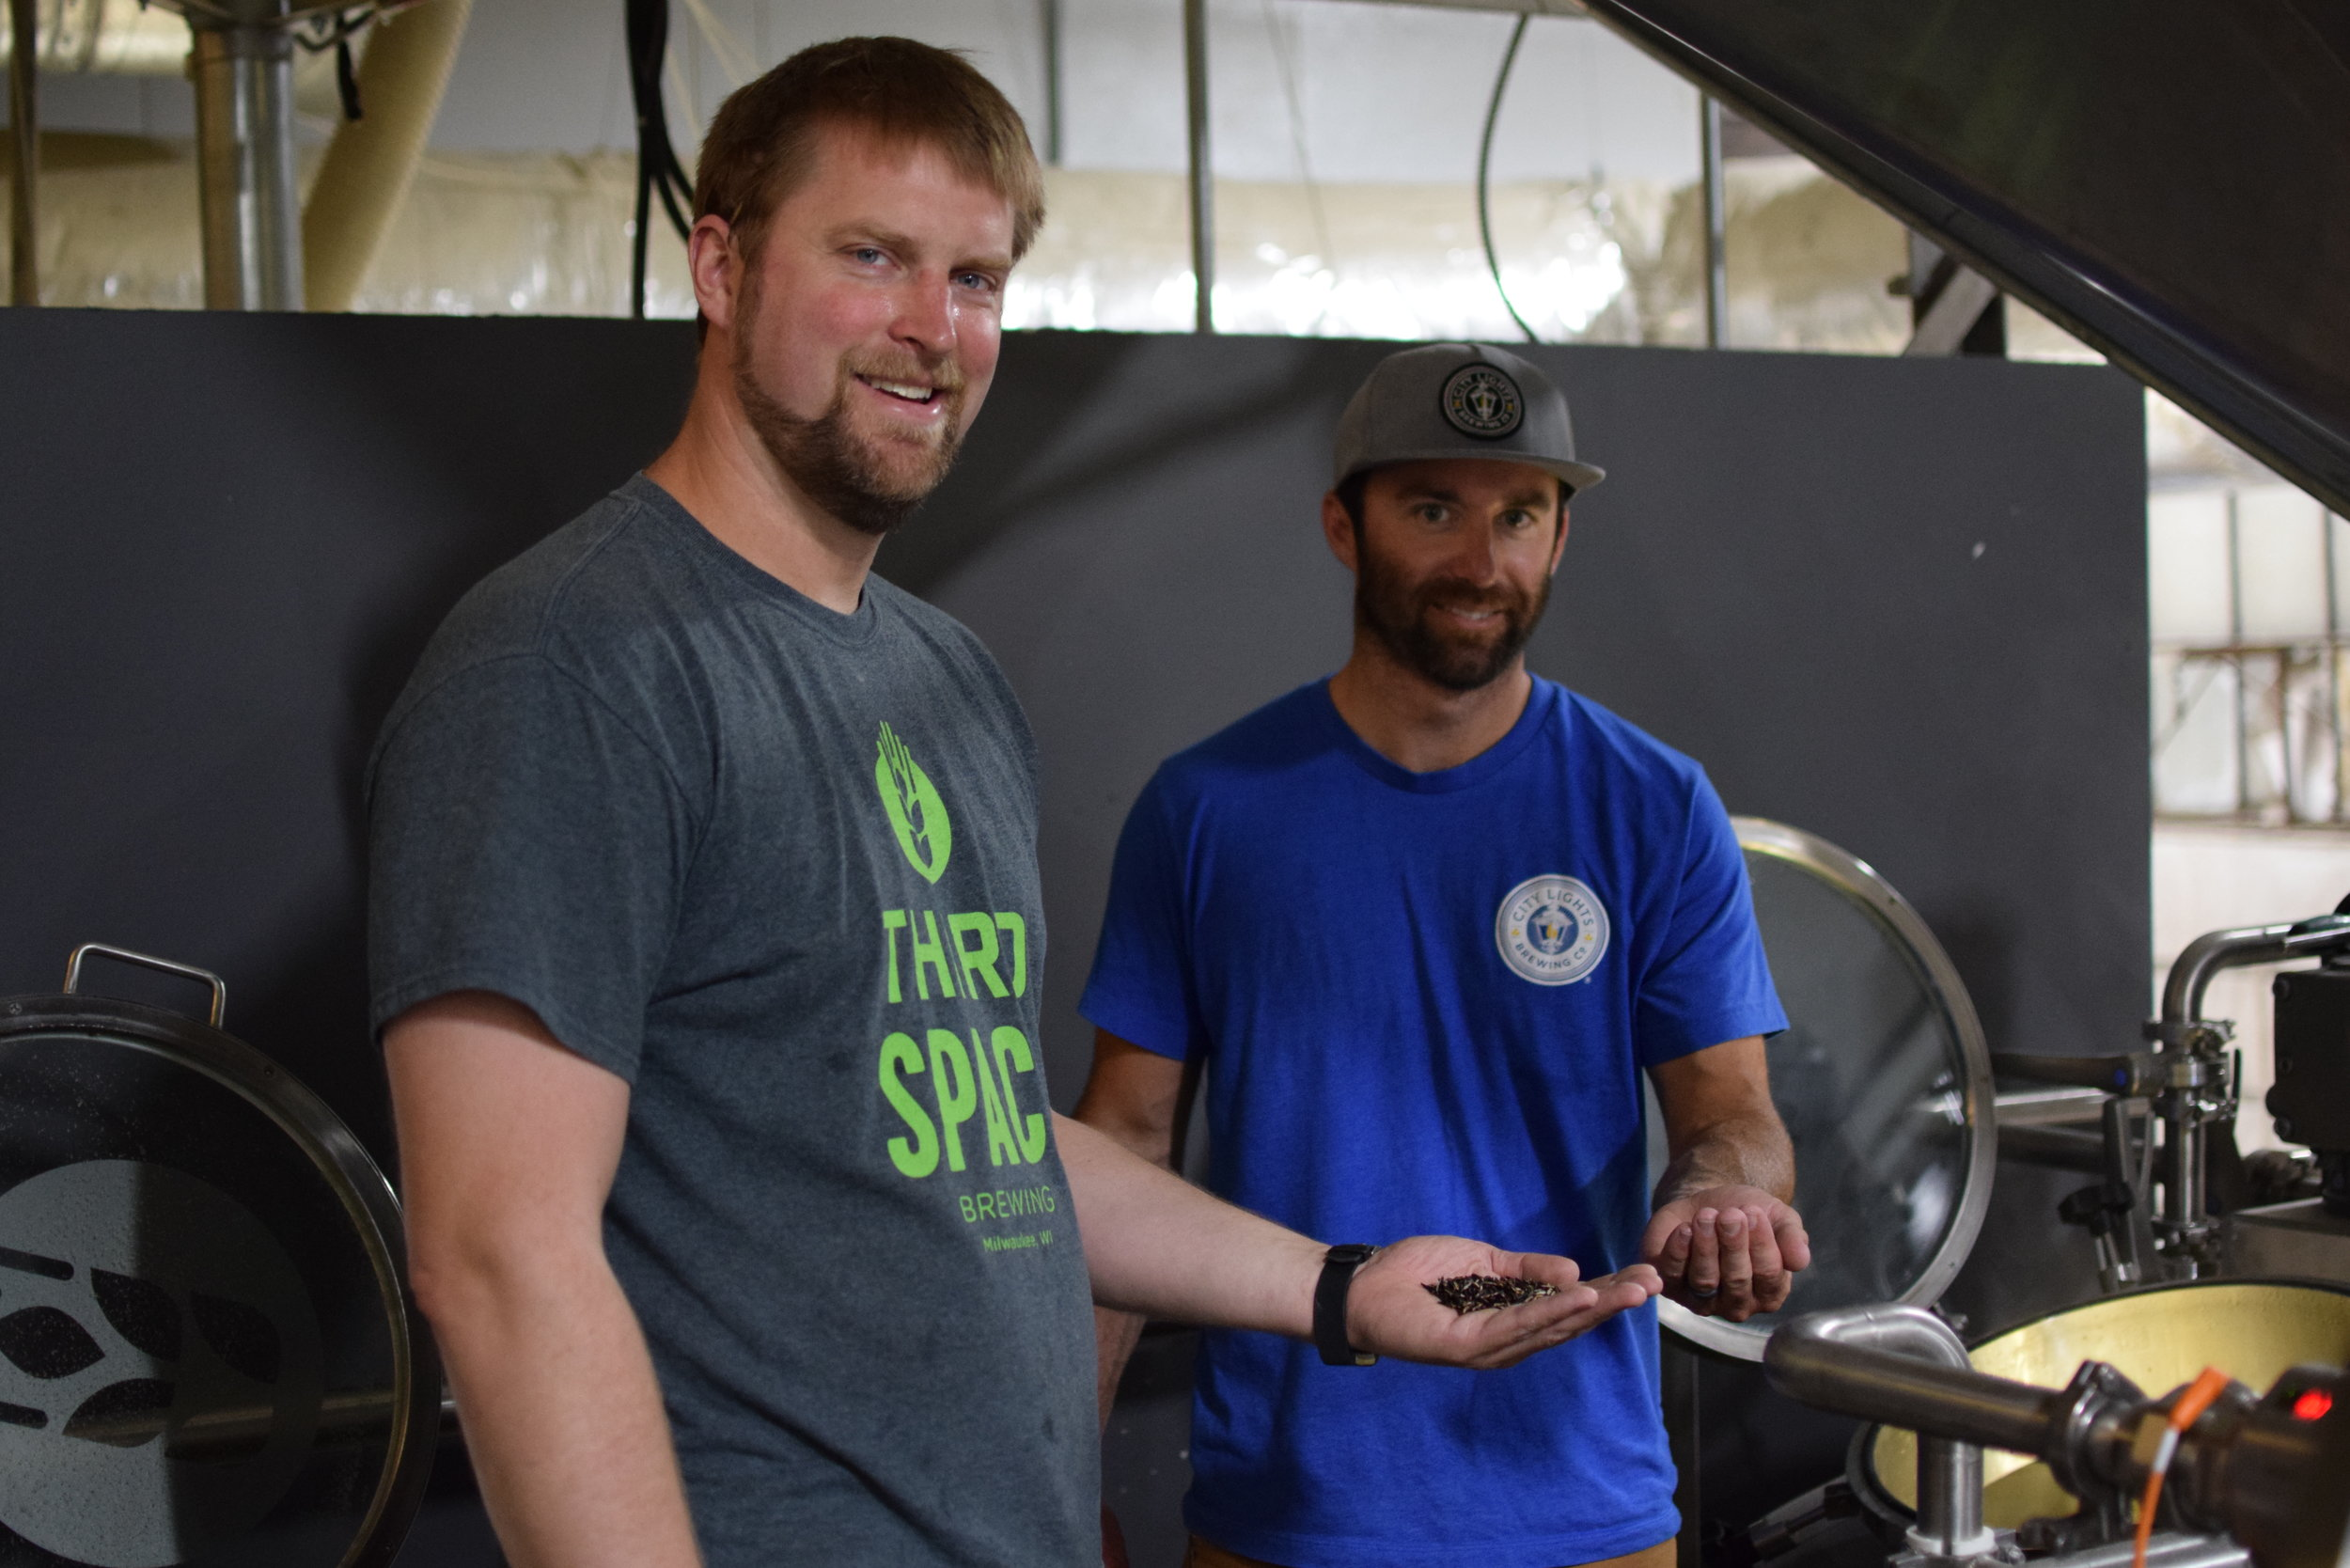 Master brewers, Kevin Wright of Third Space Brewing & Jimmy Gohsman of City Lights Brewing, holding wild rice used in the limited edition beer